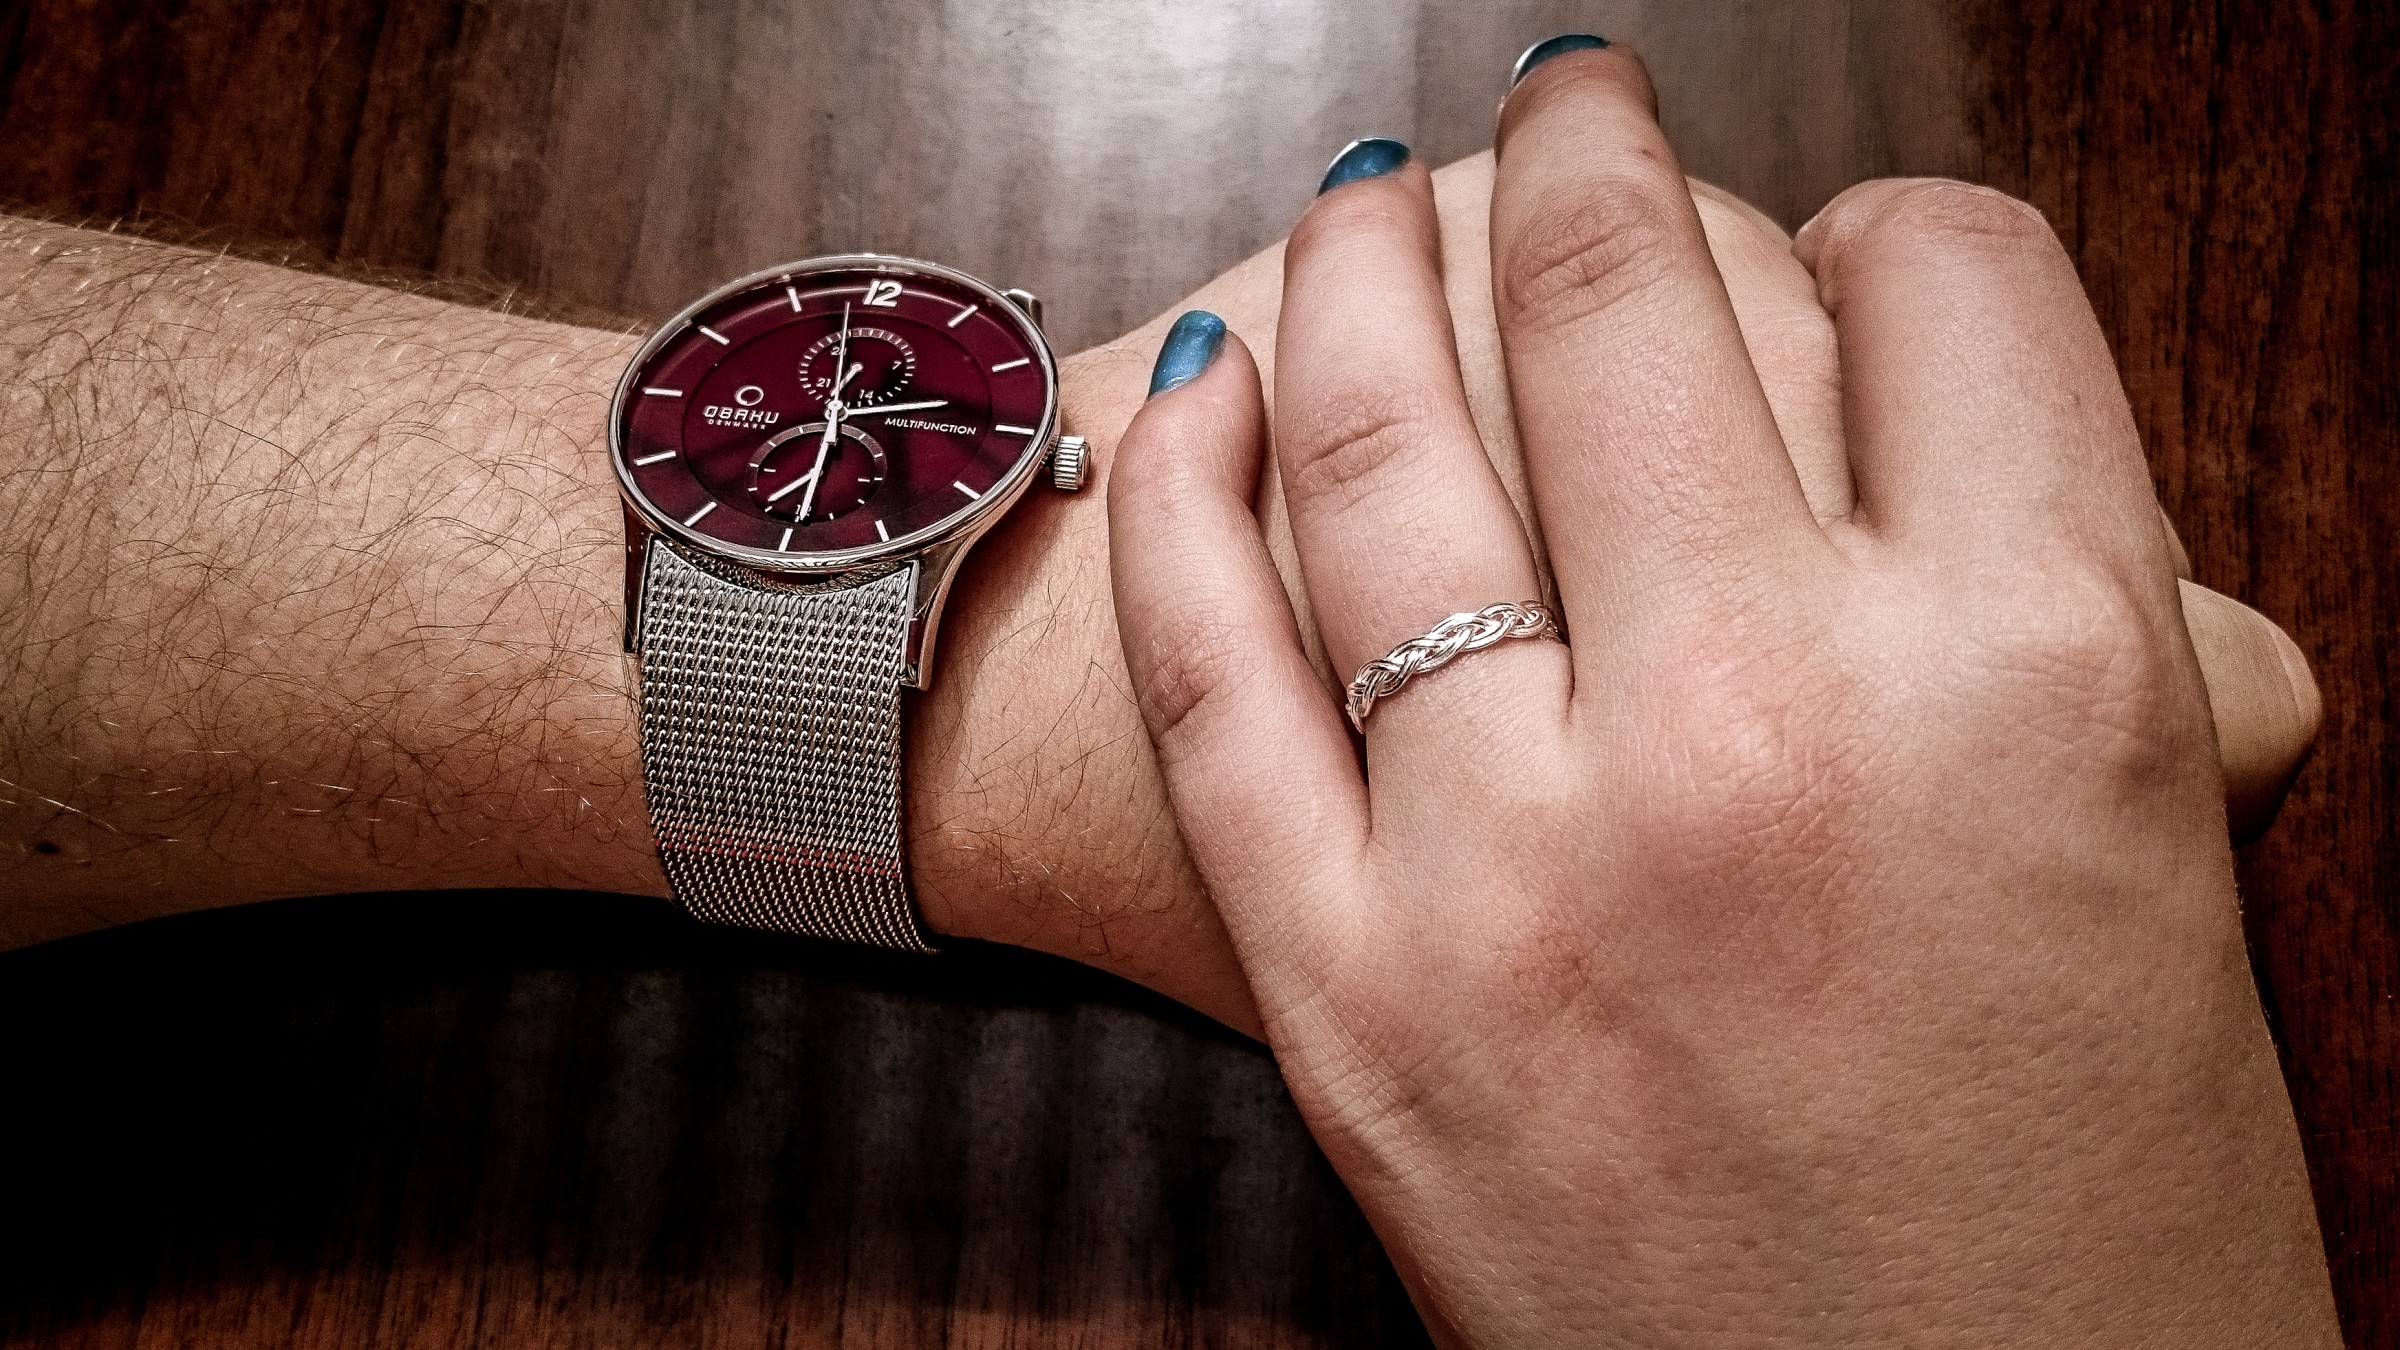 Holding hands with watch and ring